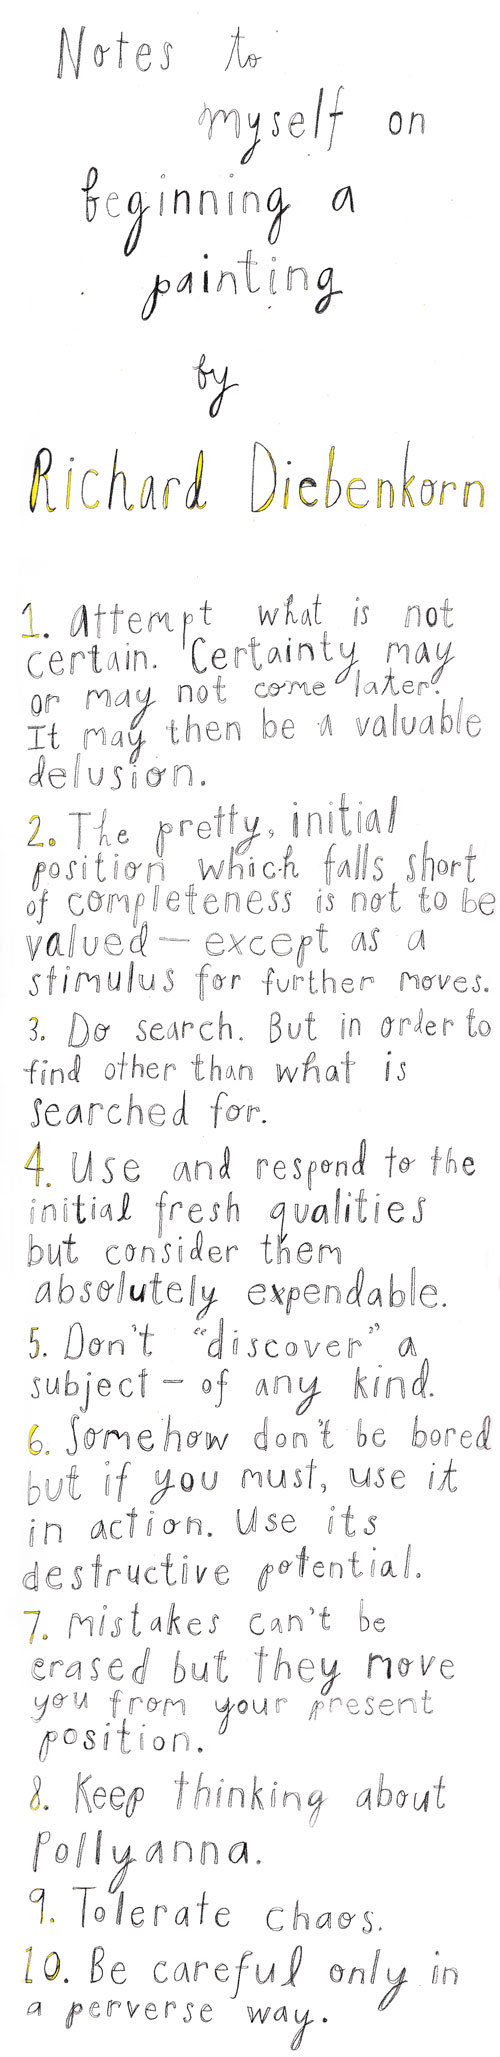 diebenkorn_painting2 - 10 Rules for Creative Projects - Lifestyle, Culture and Arts